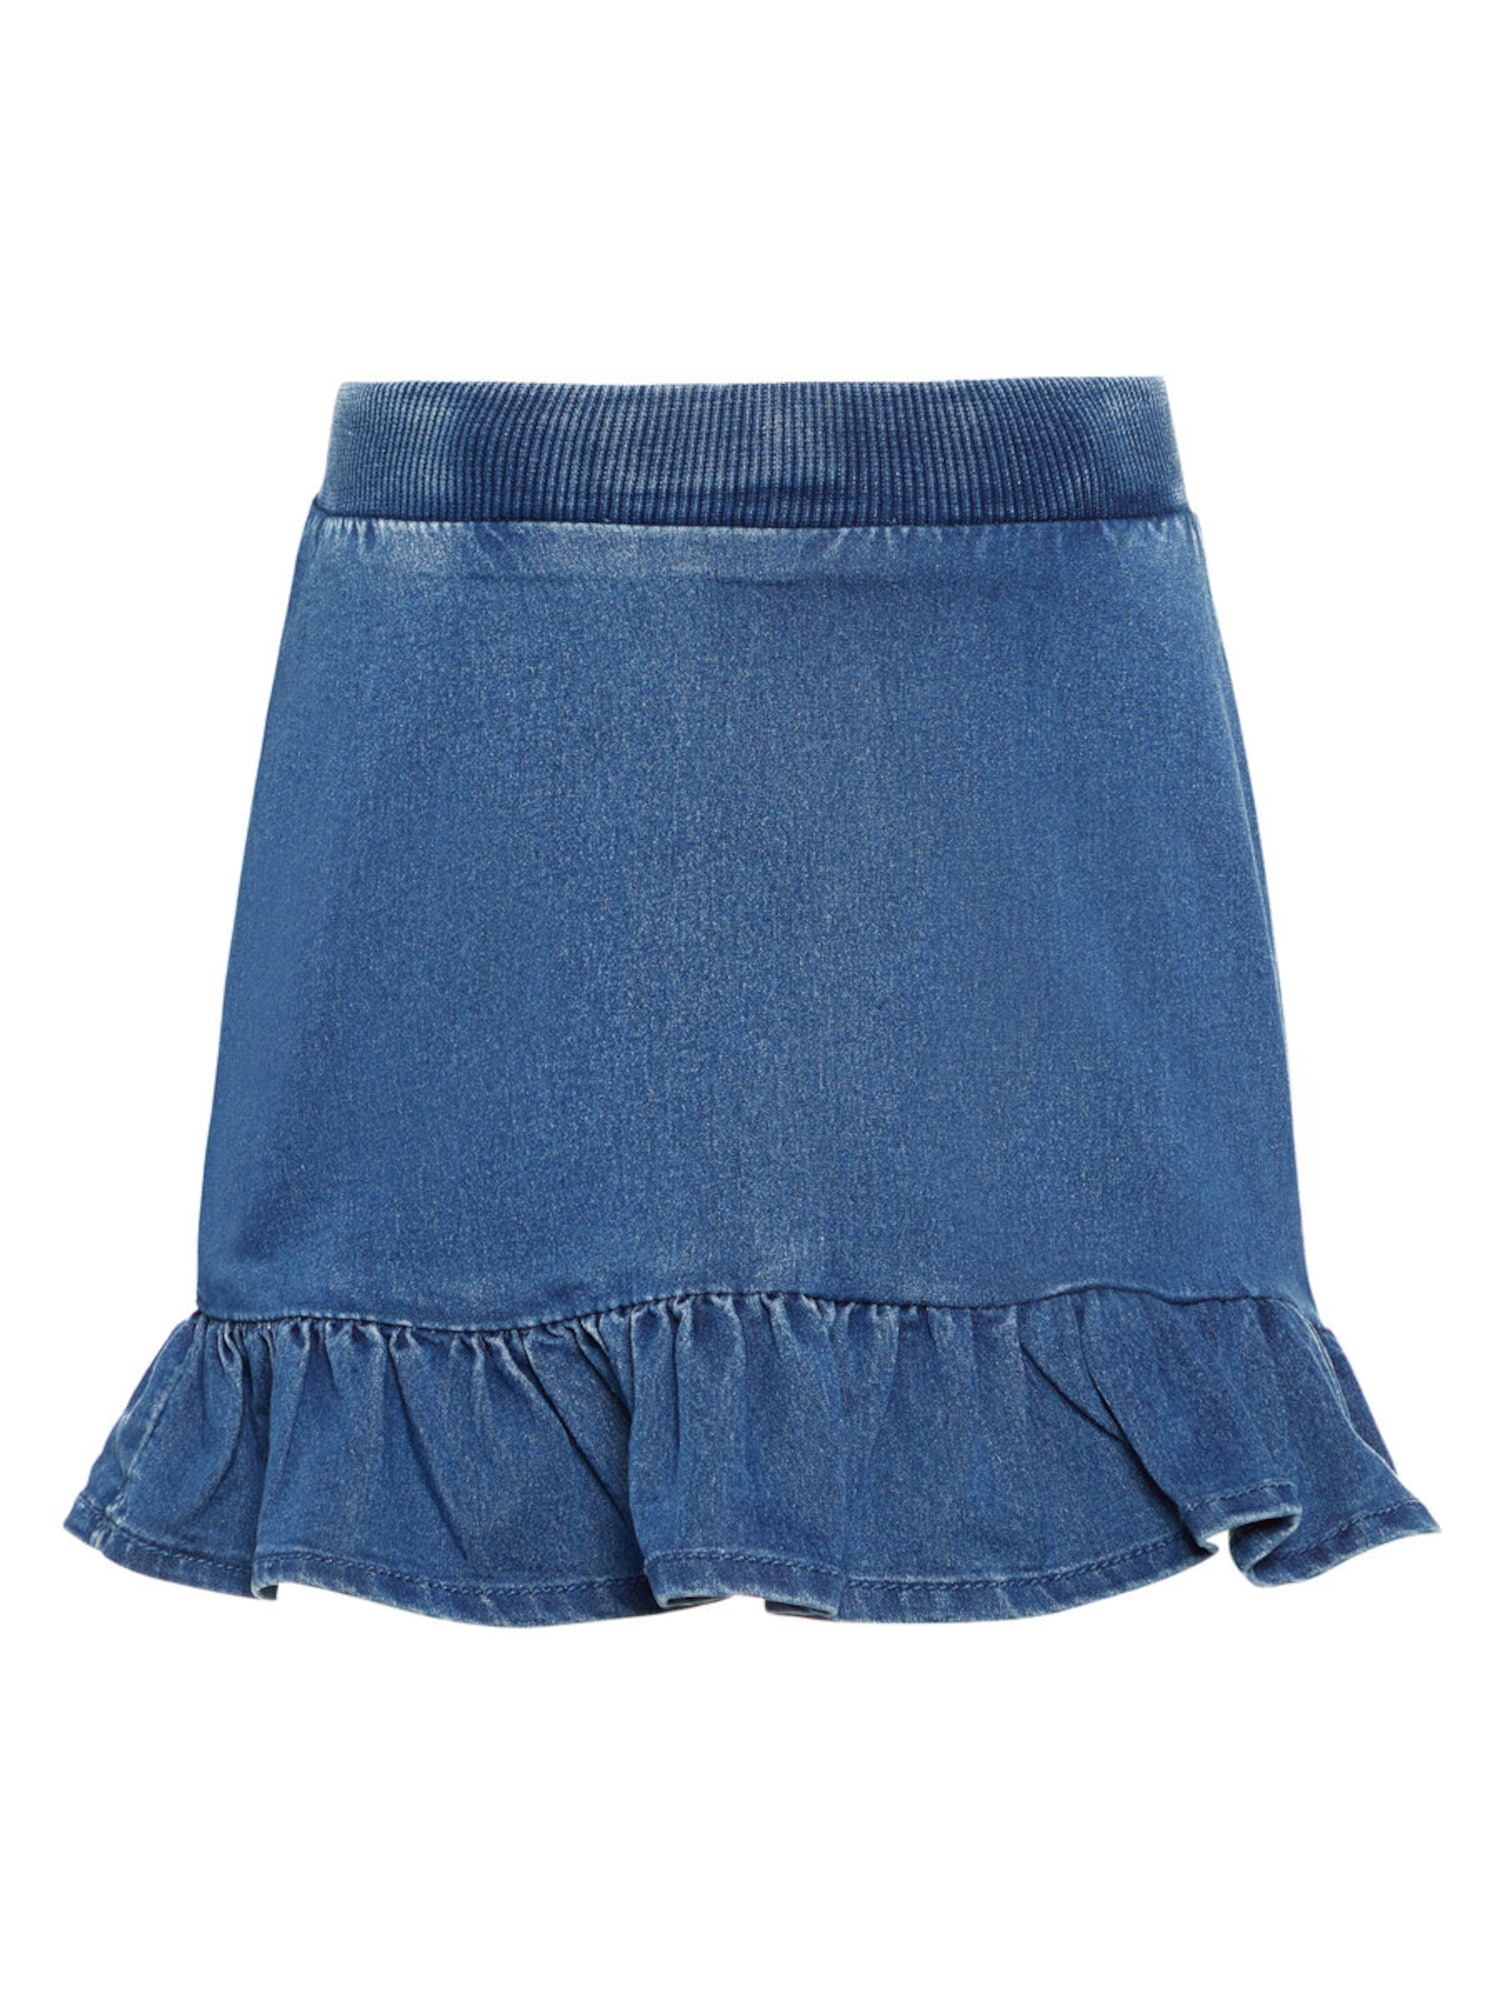 Name it Meisjes Rok blauw denim